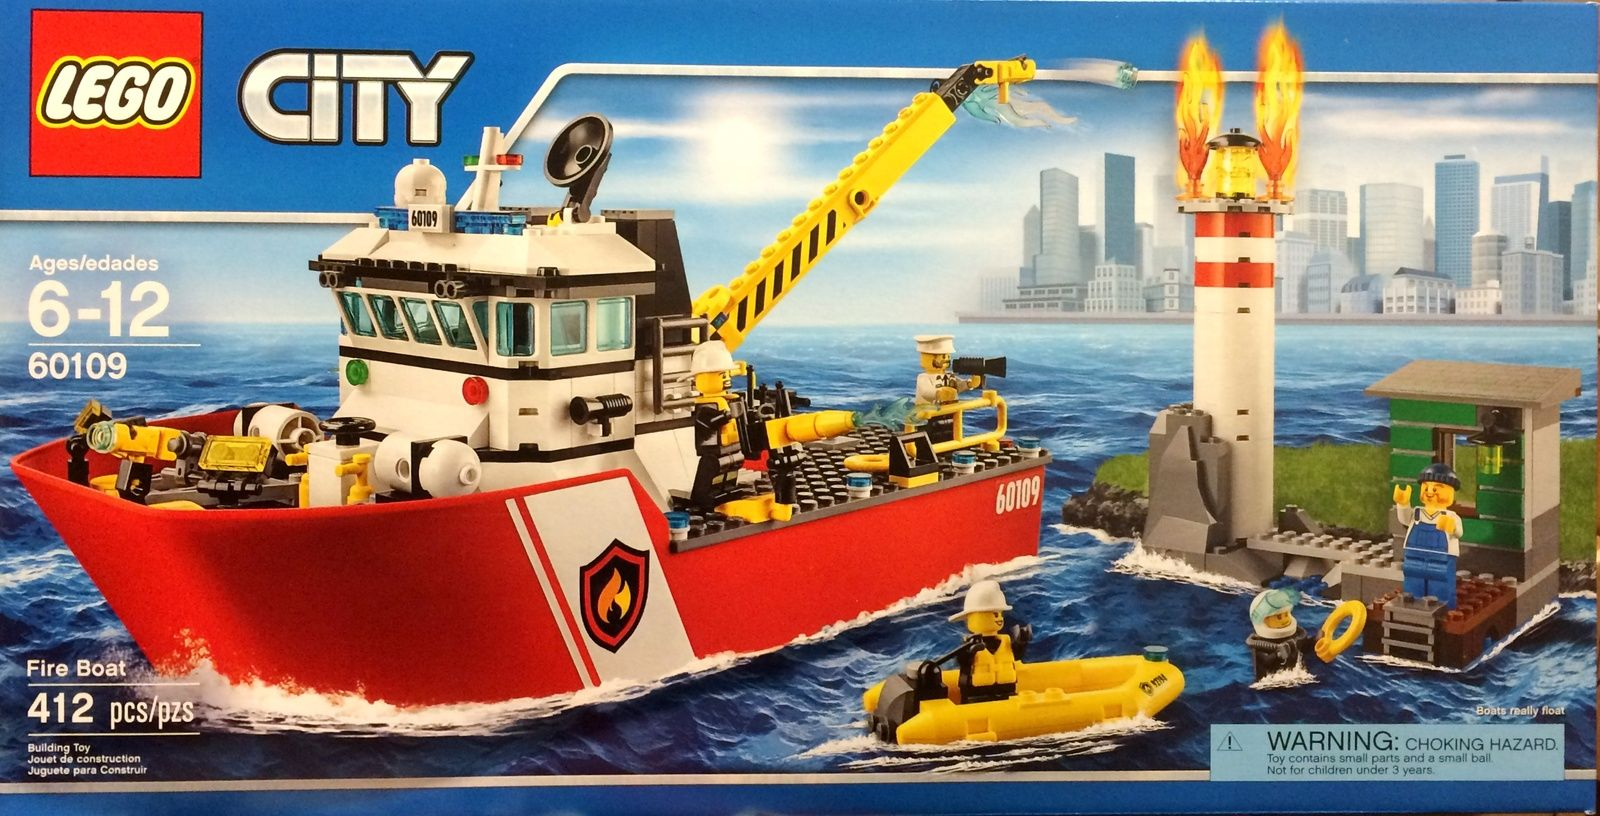 Lego City 60109 Fire Boat Instruction Manuals 1 2 and 3 Only Bauanleitung